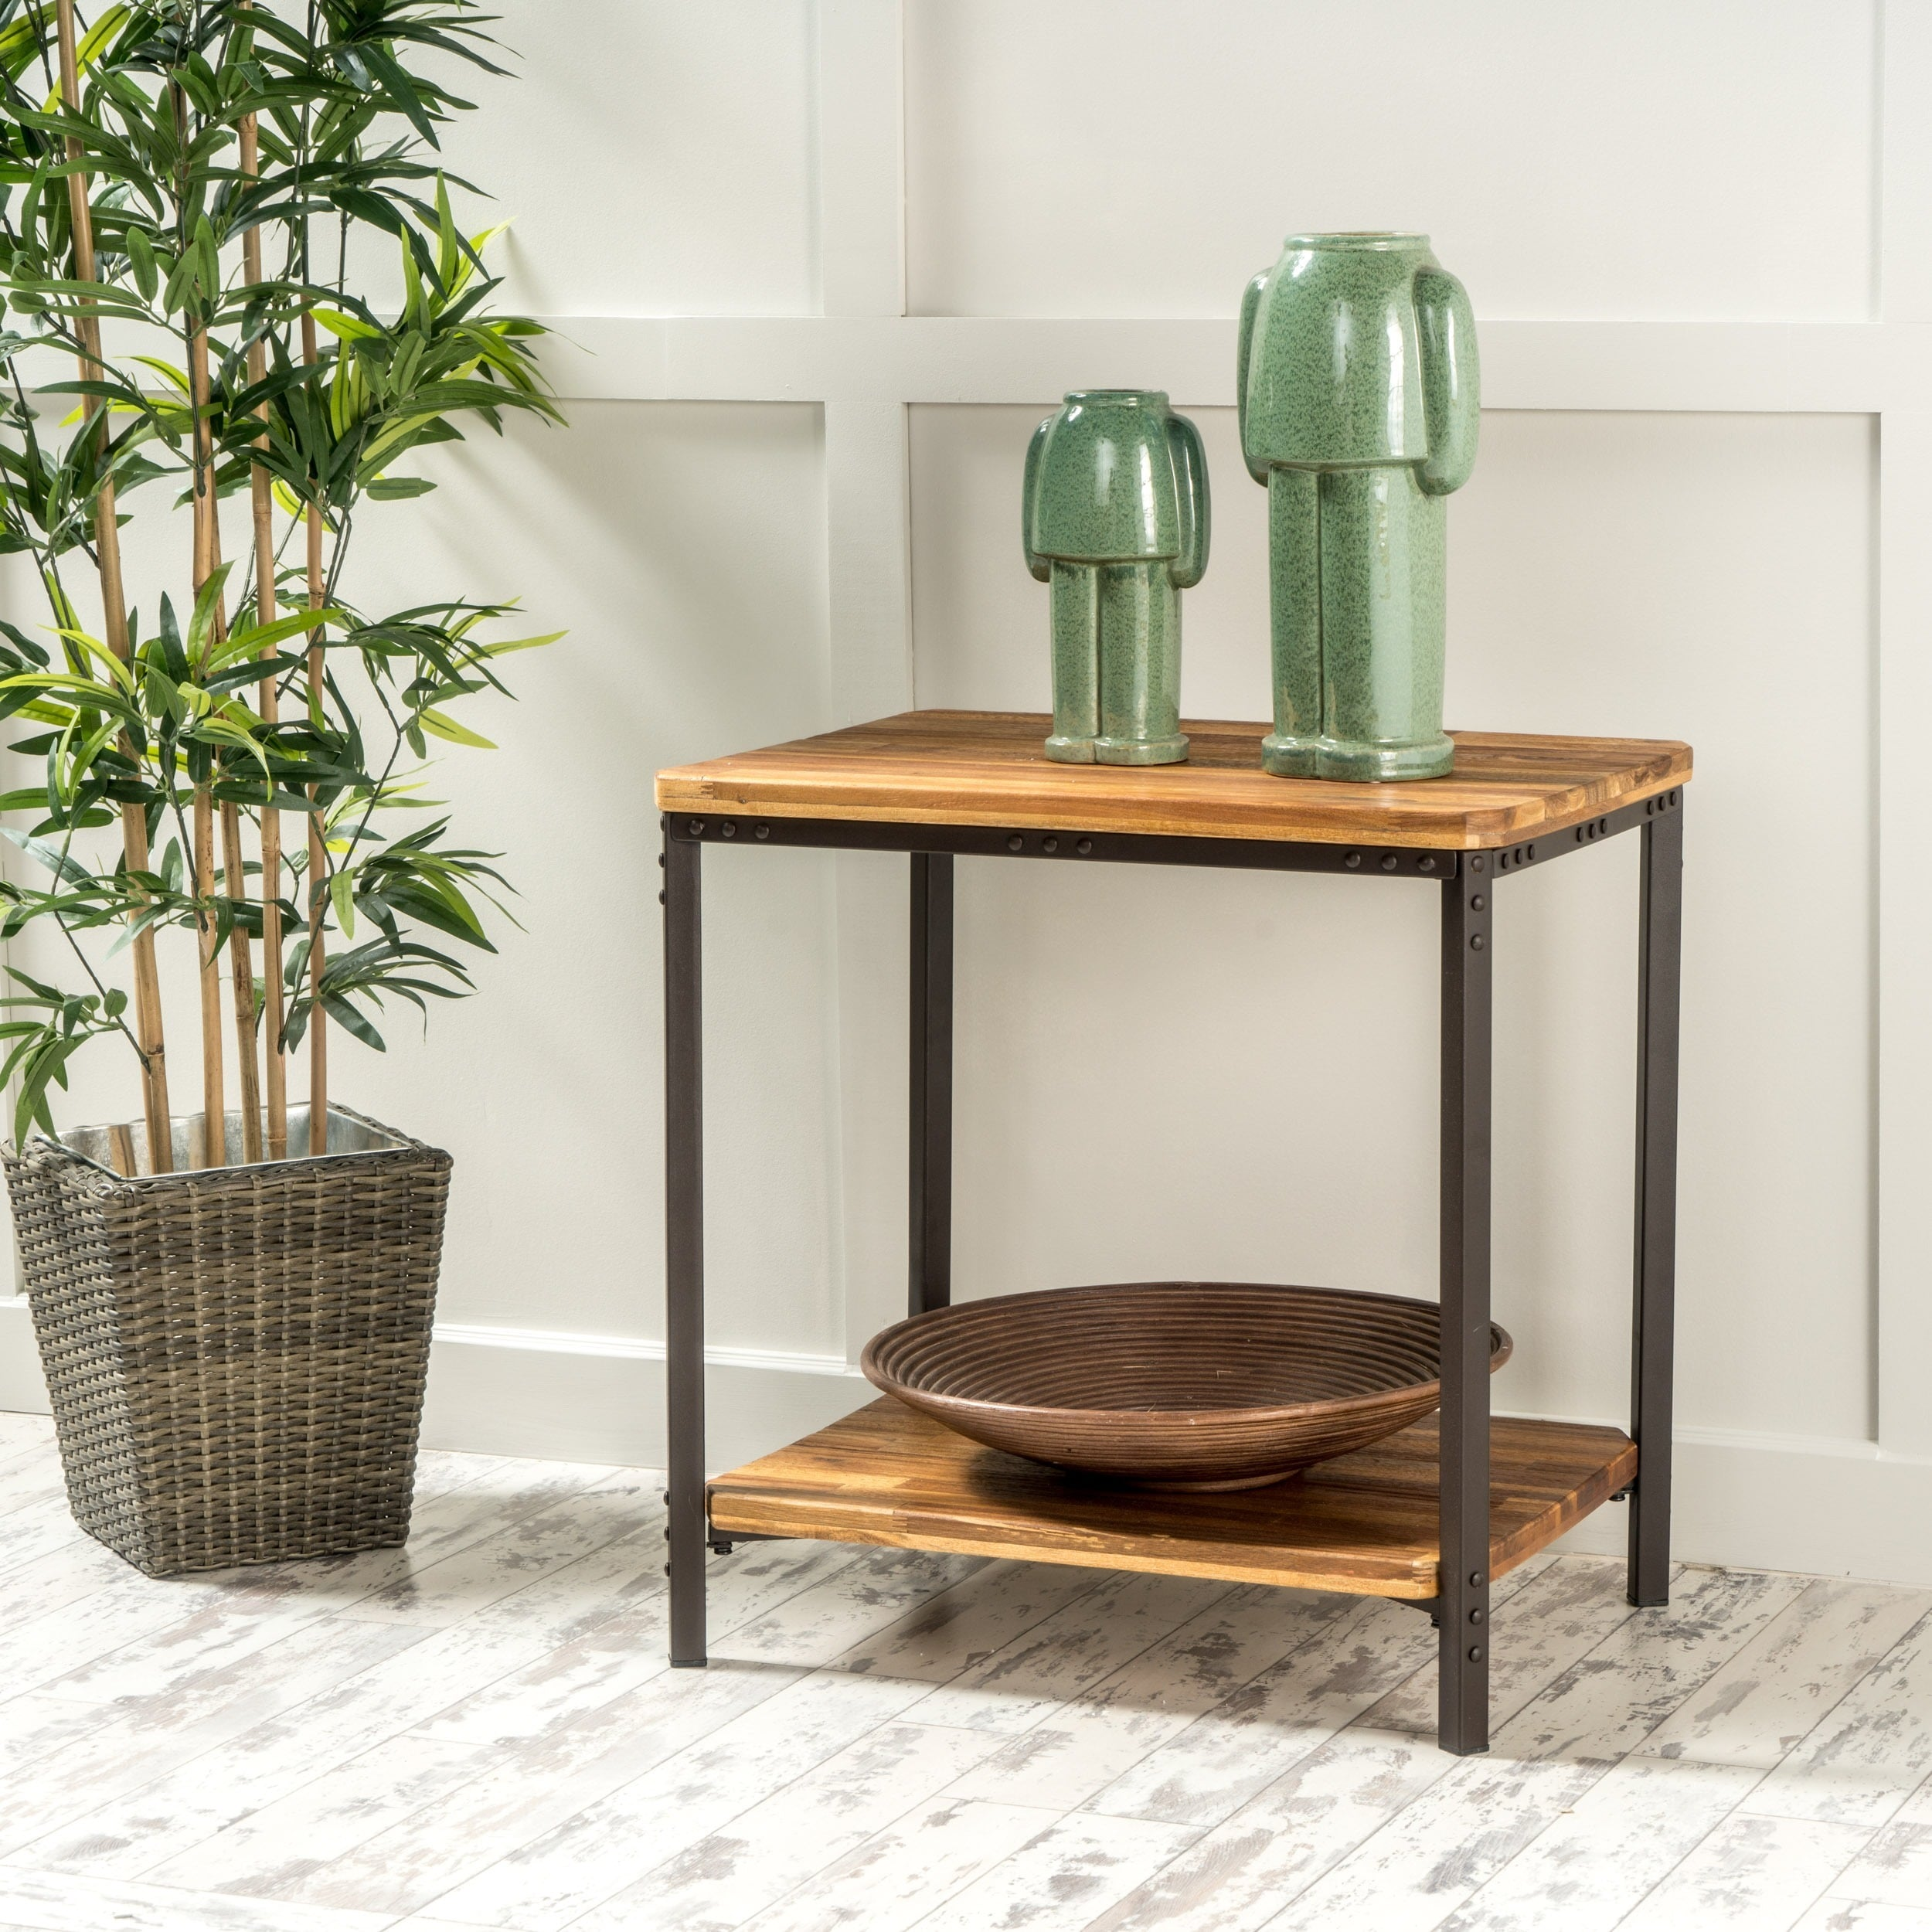 Ronan Wood Rustic Metal End Table By Christopher Knight Home Ships To Canada Ca 8785945